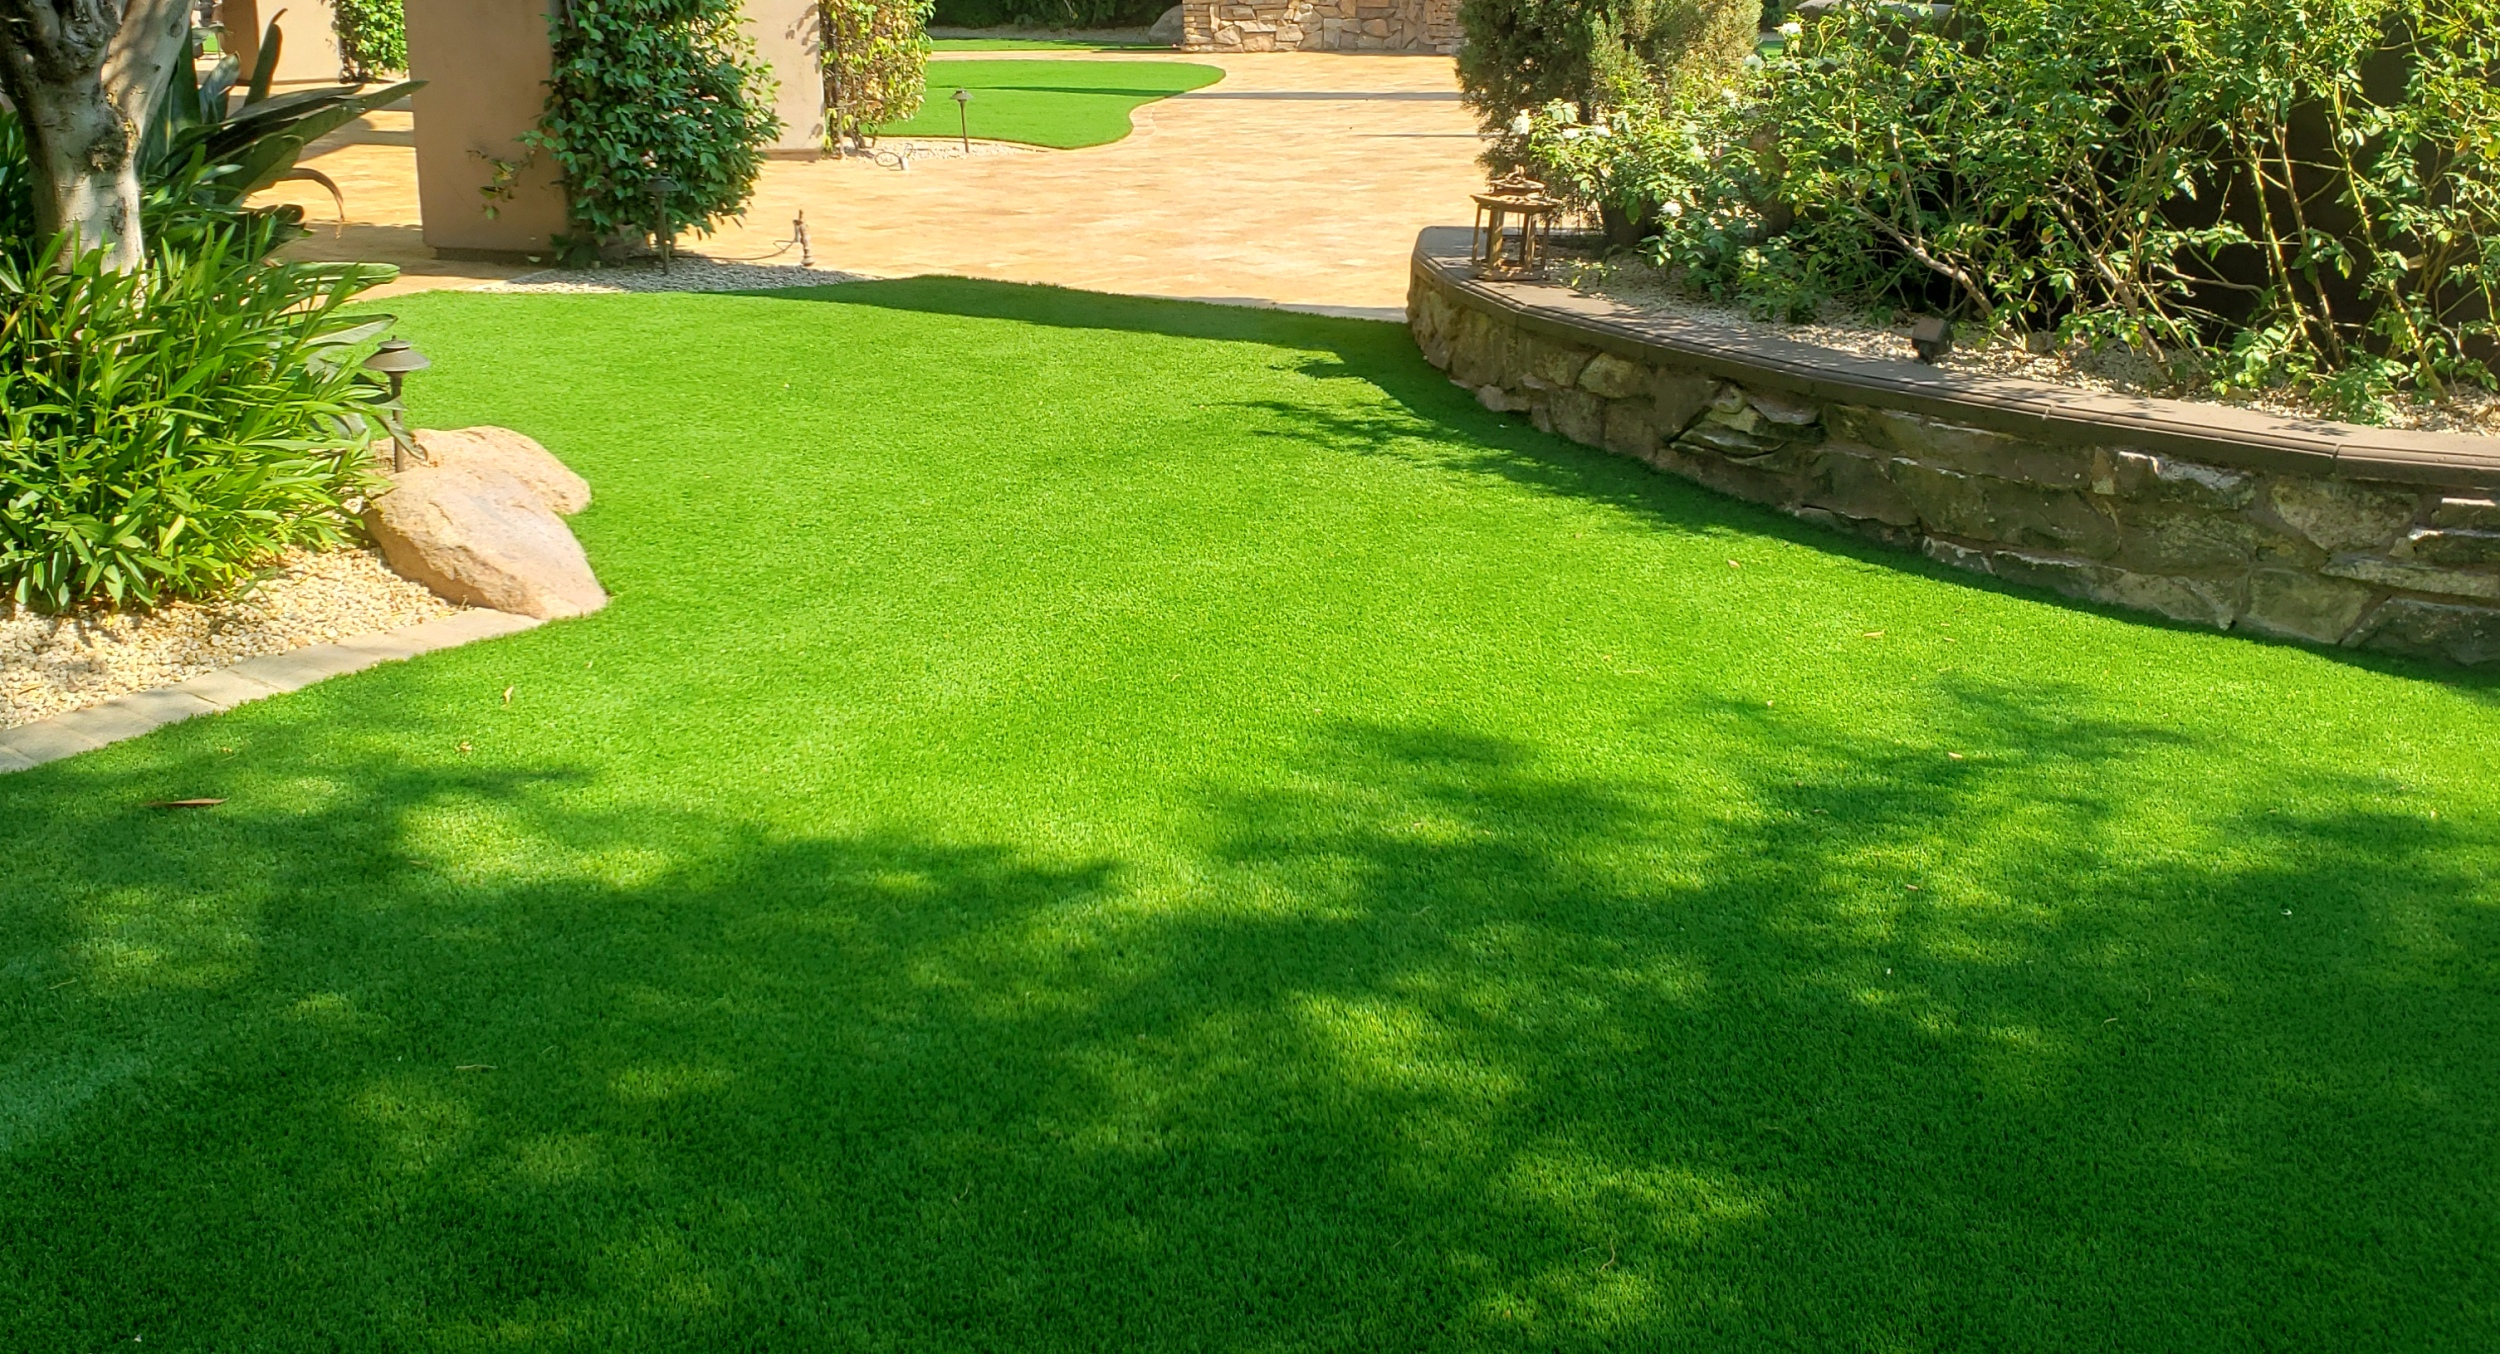 Enjoy that lush look all year with low-maintenance artificia turf. Scottsdale clients picked great quality for long-lasting beauty.